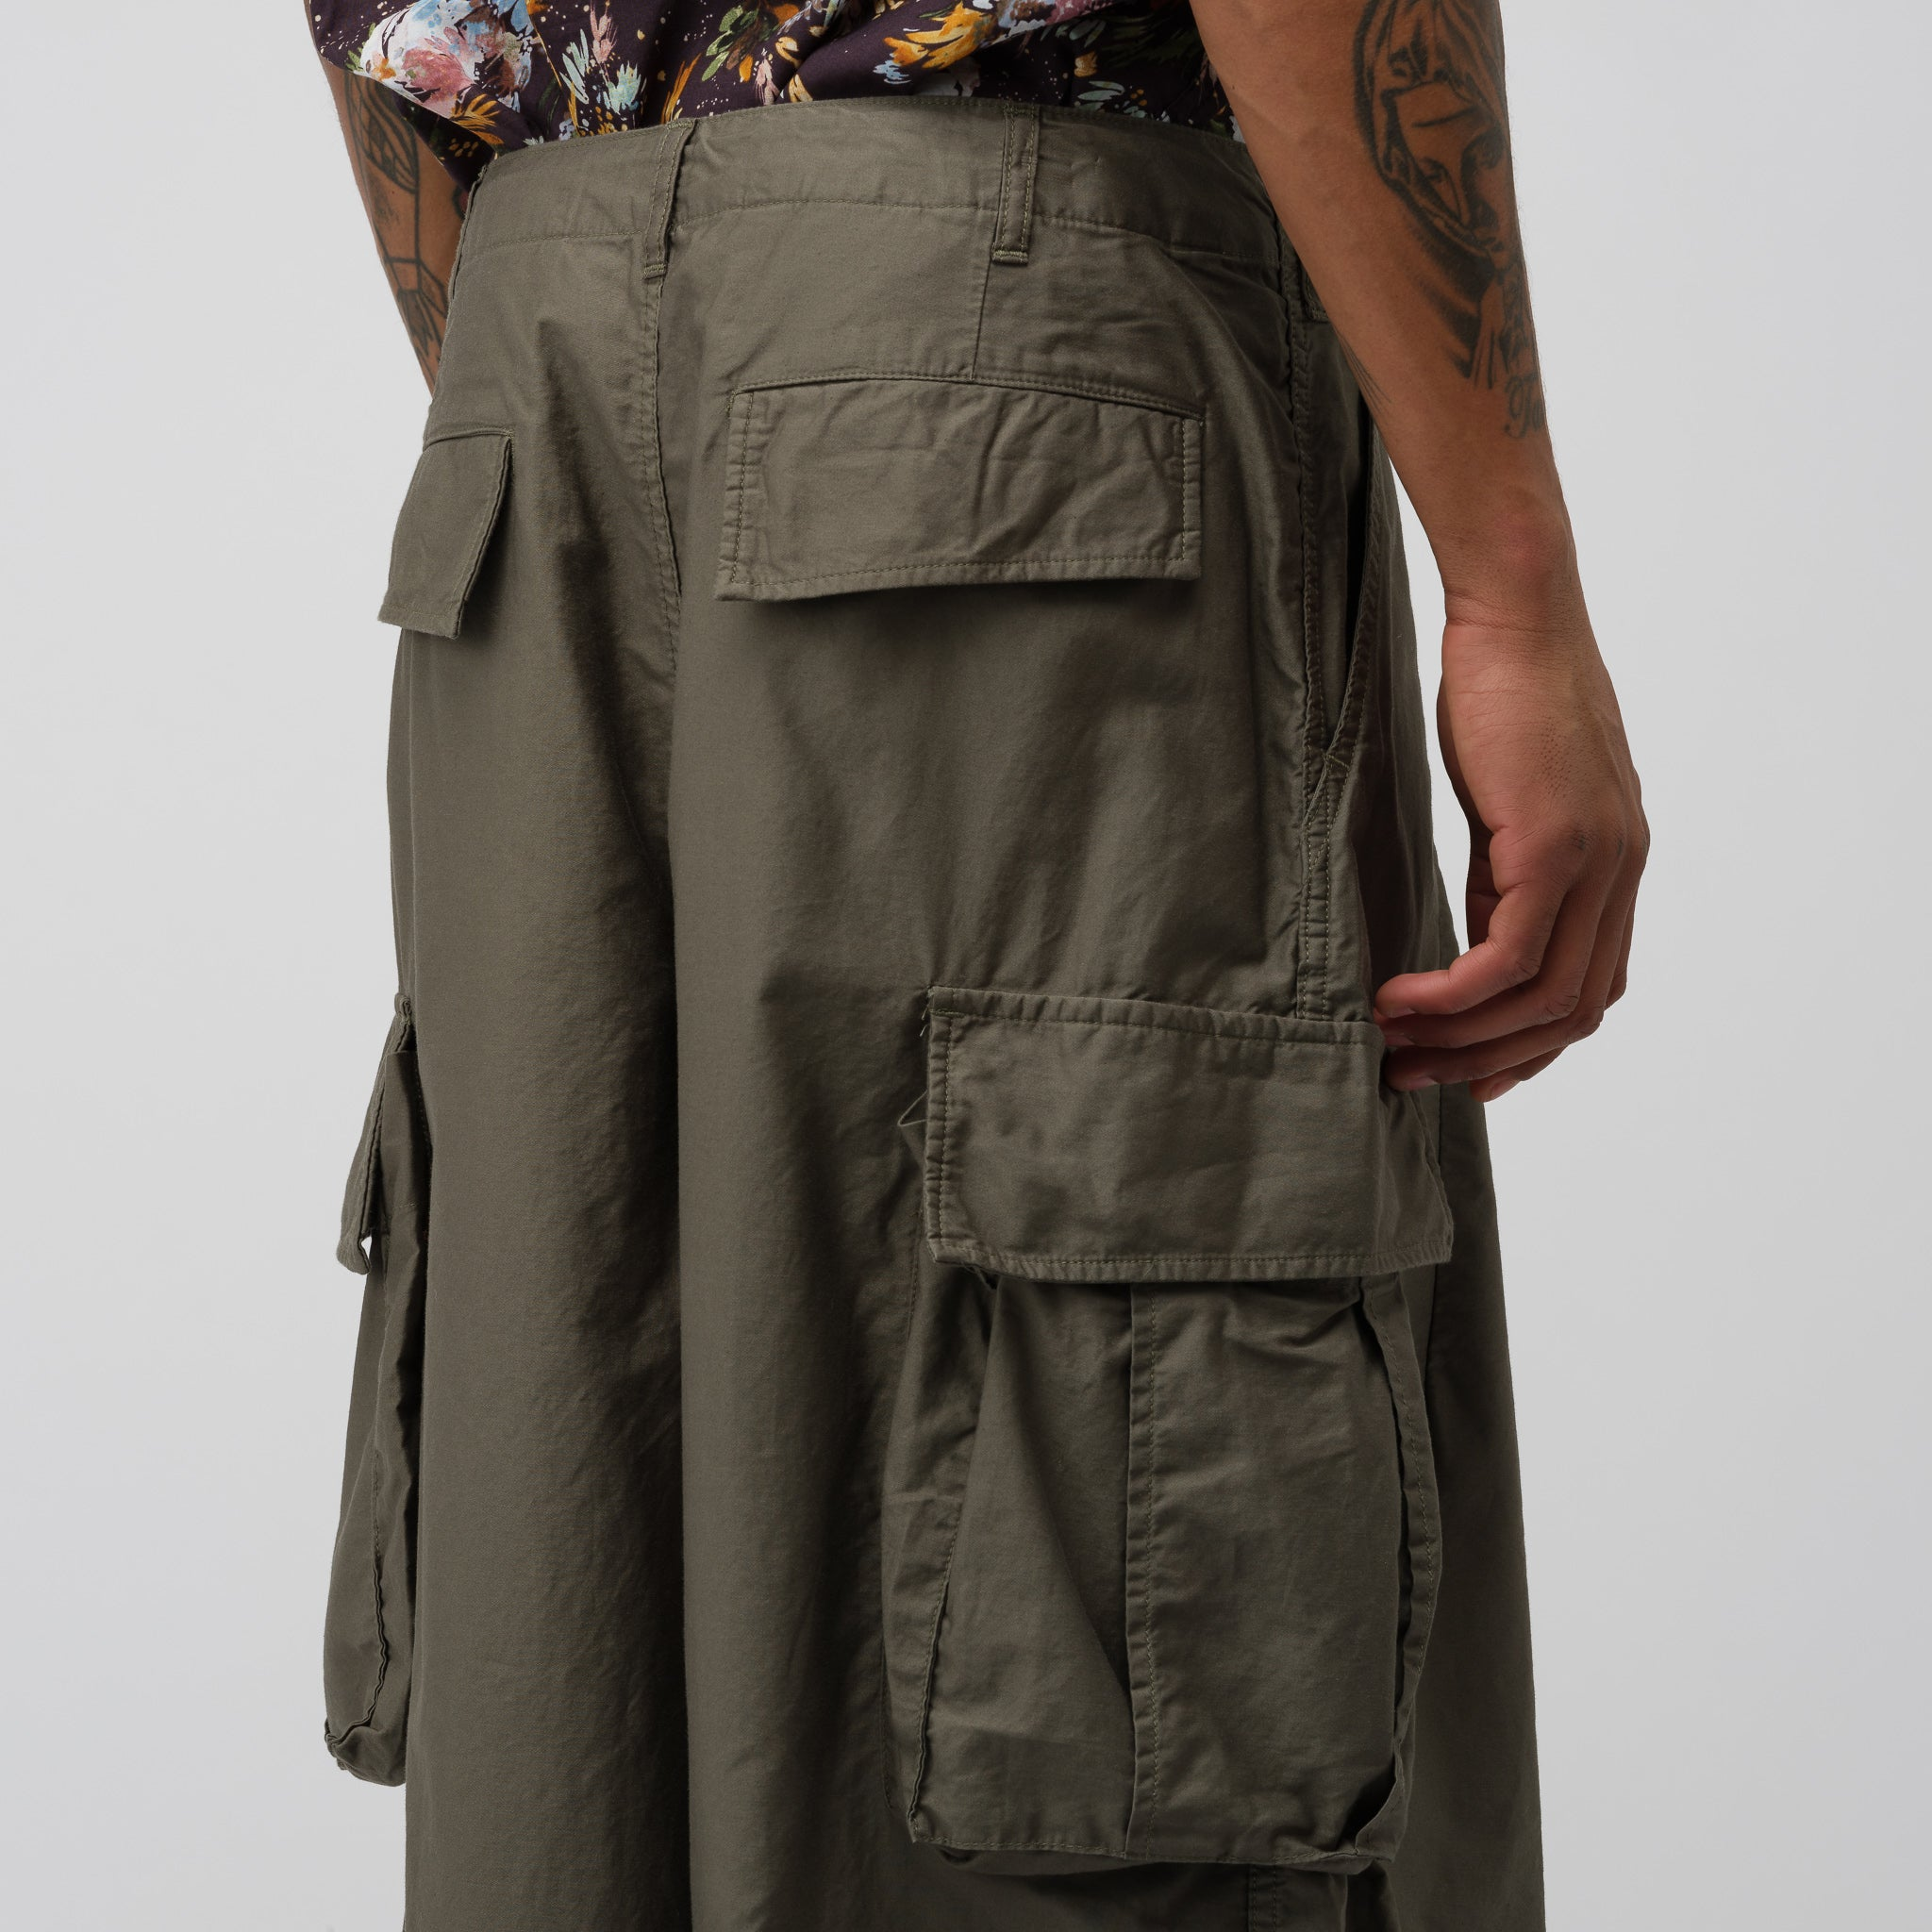 H.D. BDU Pant in Olive